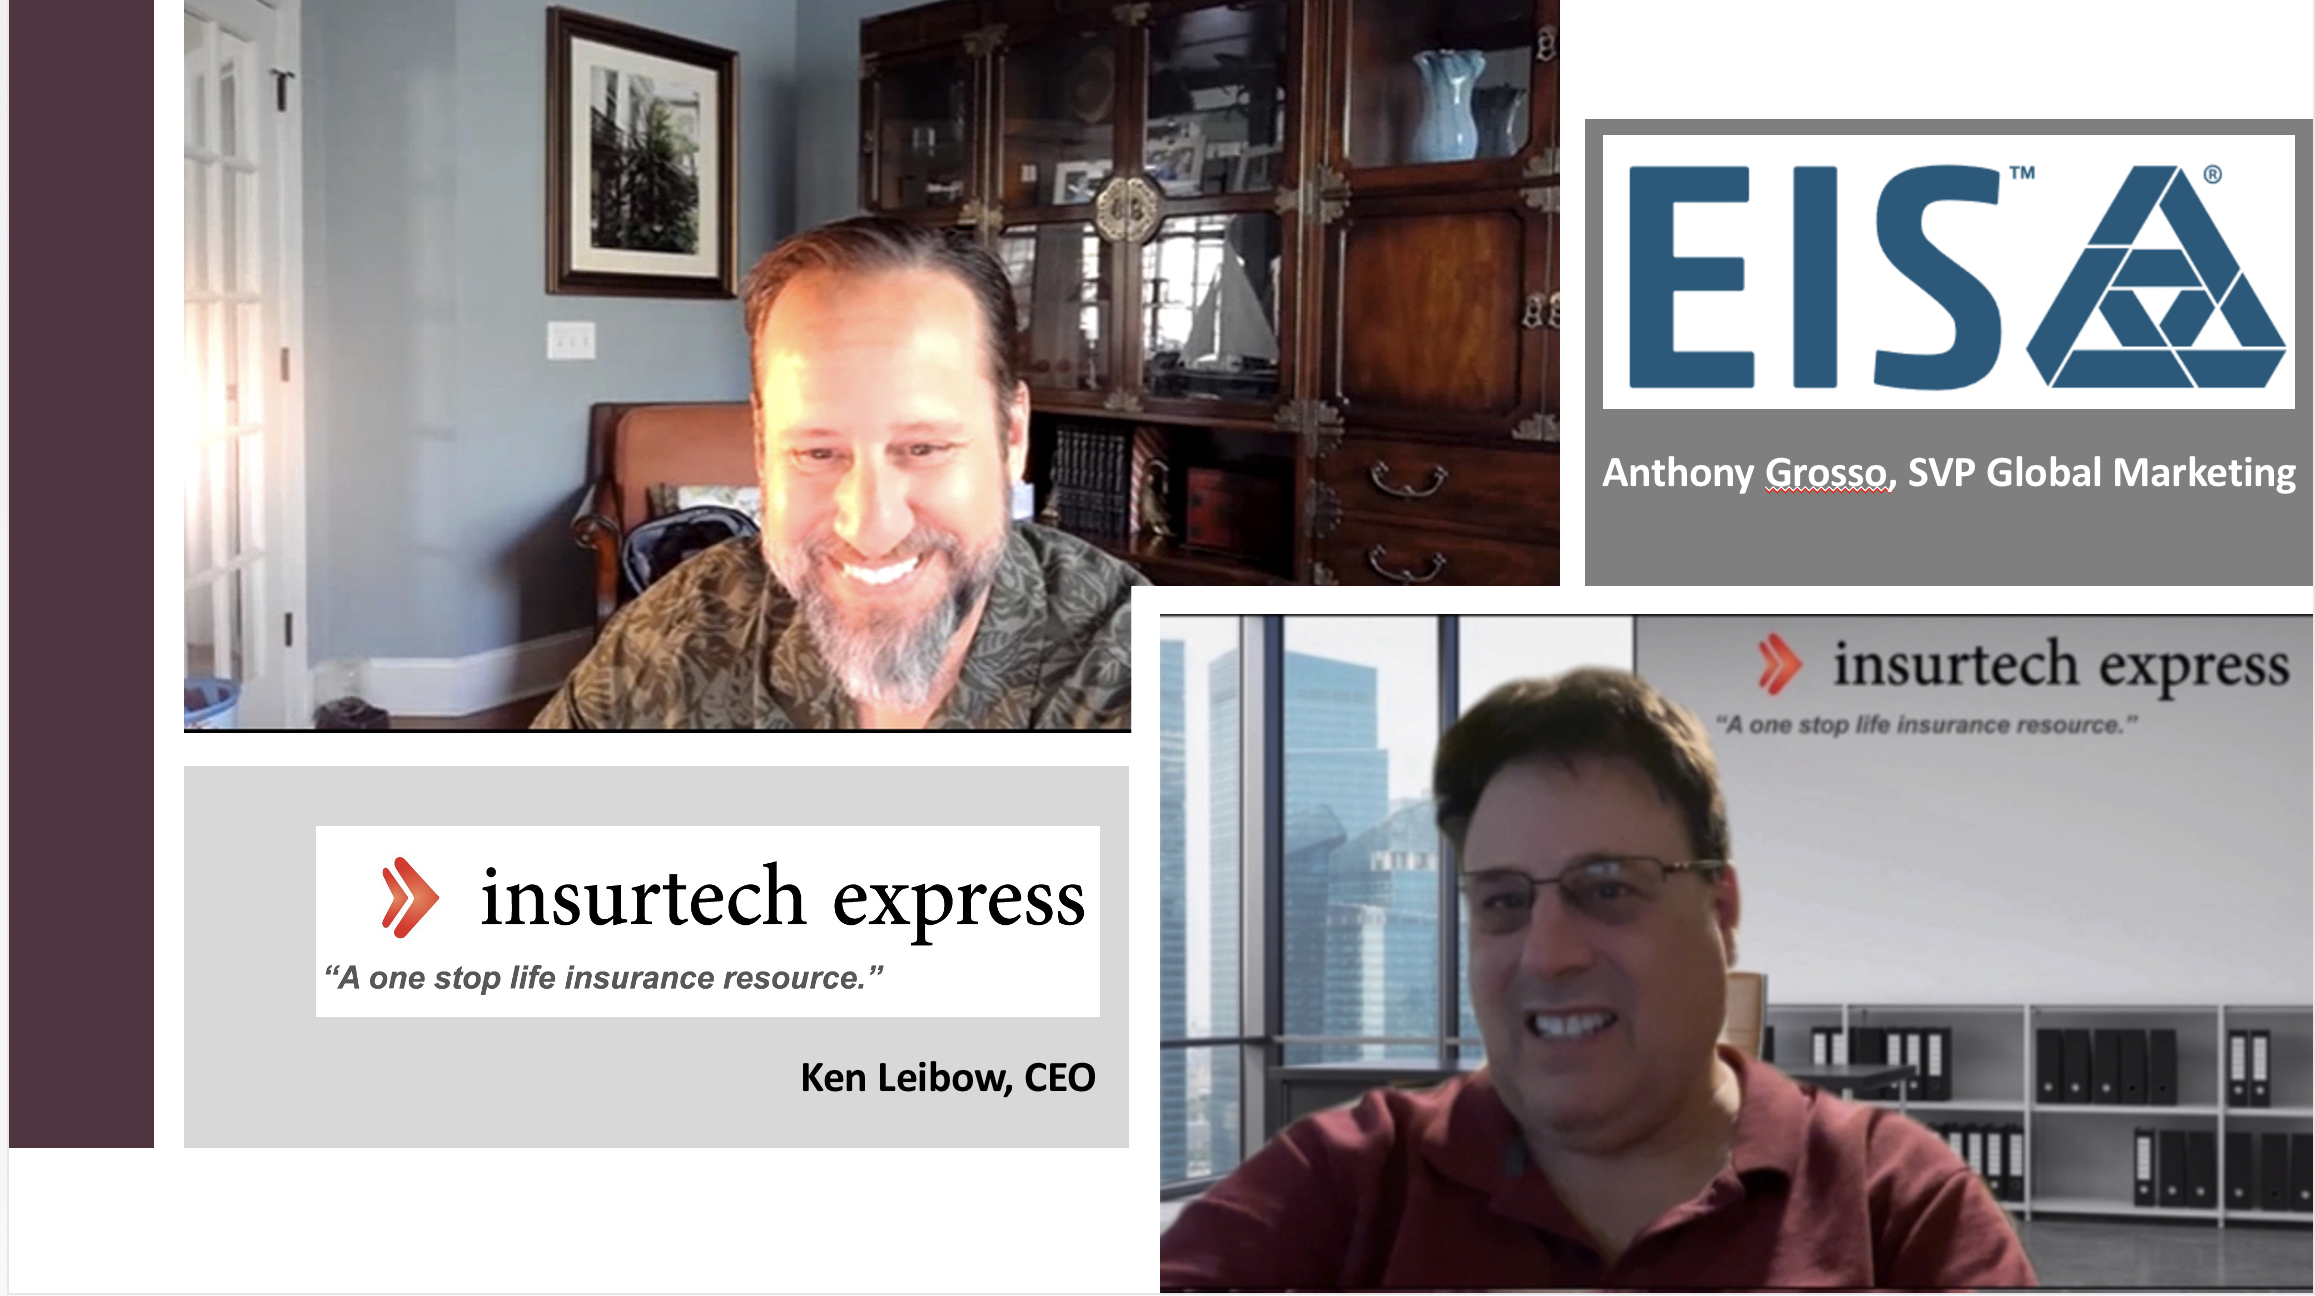 EIS' innovative insurance platform accelerates tech transformation in the insurance industry: Interview with Anthony Grosso, SVP Global Marketing